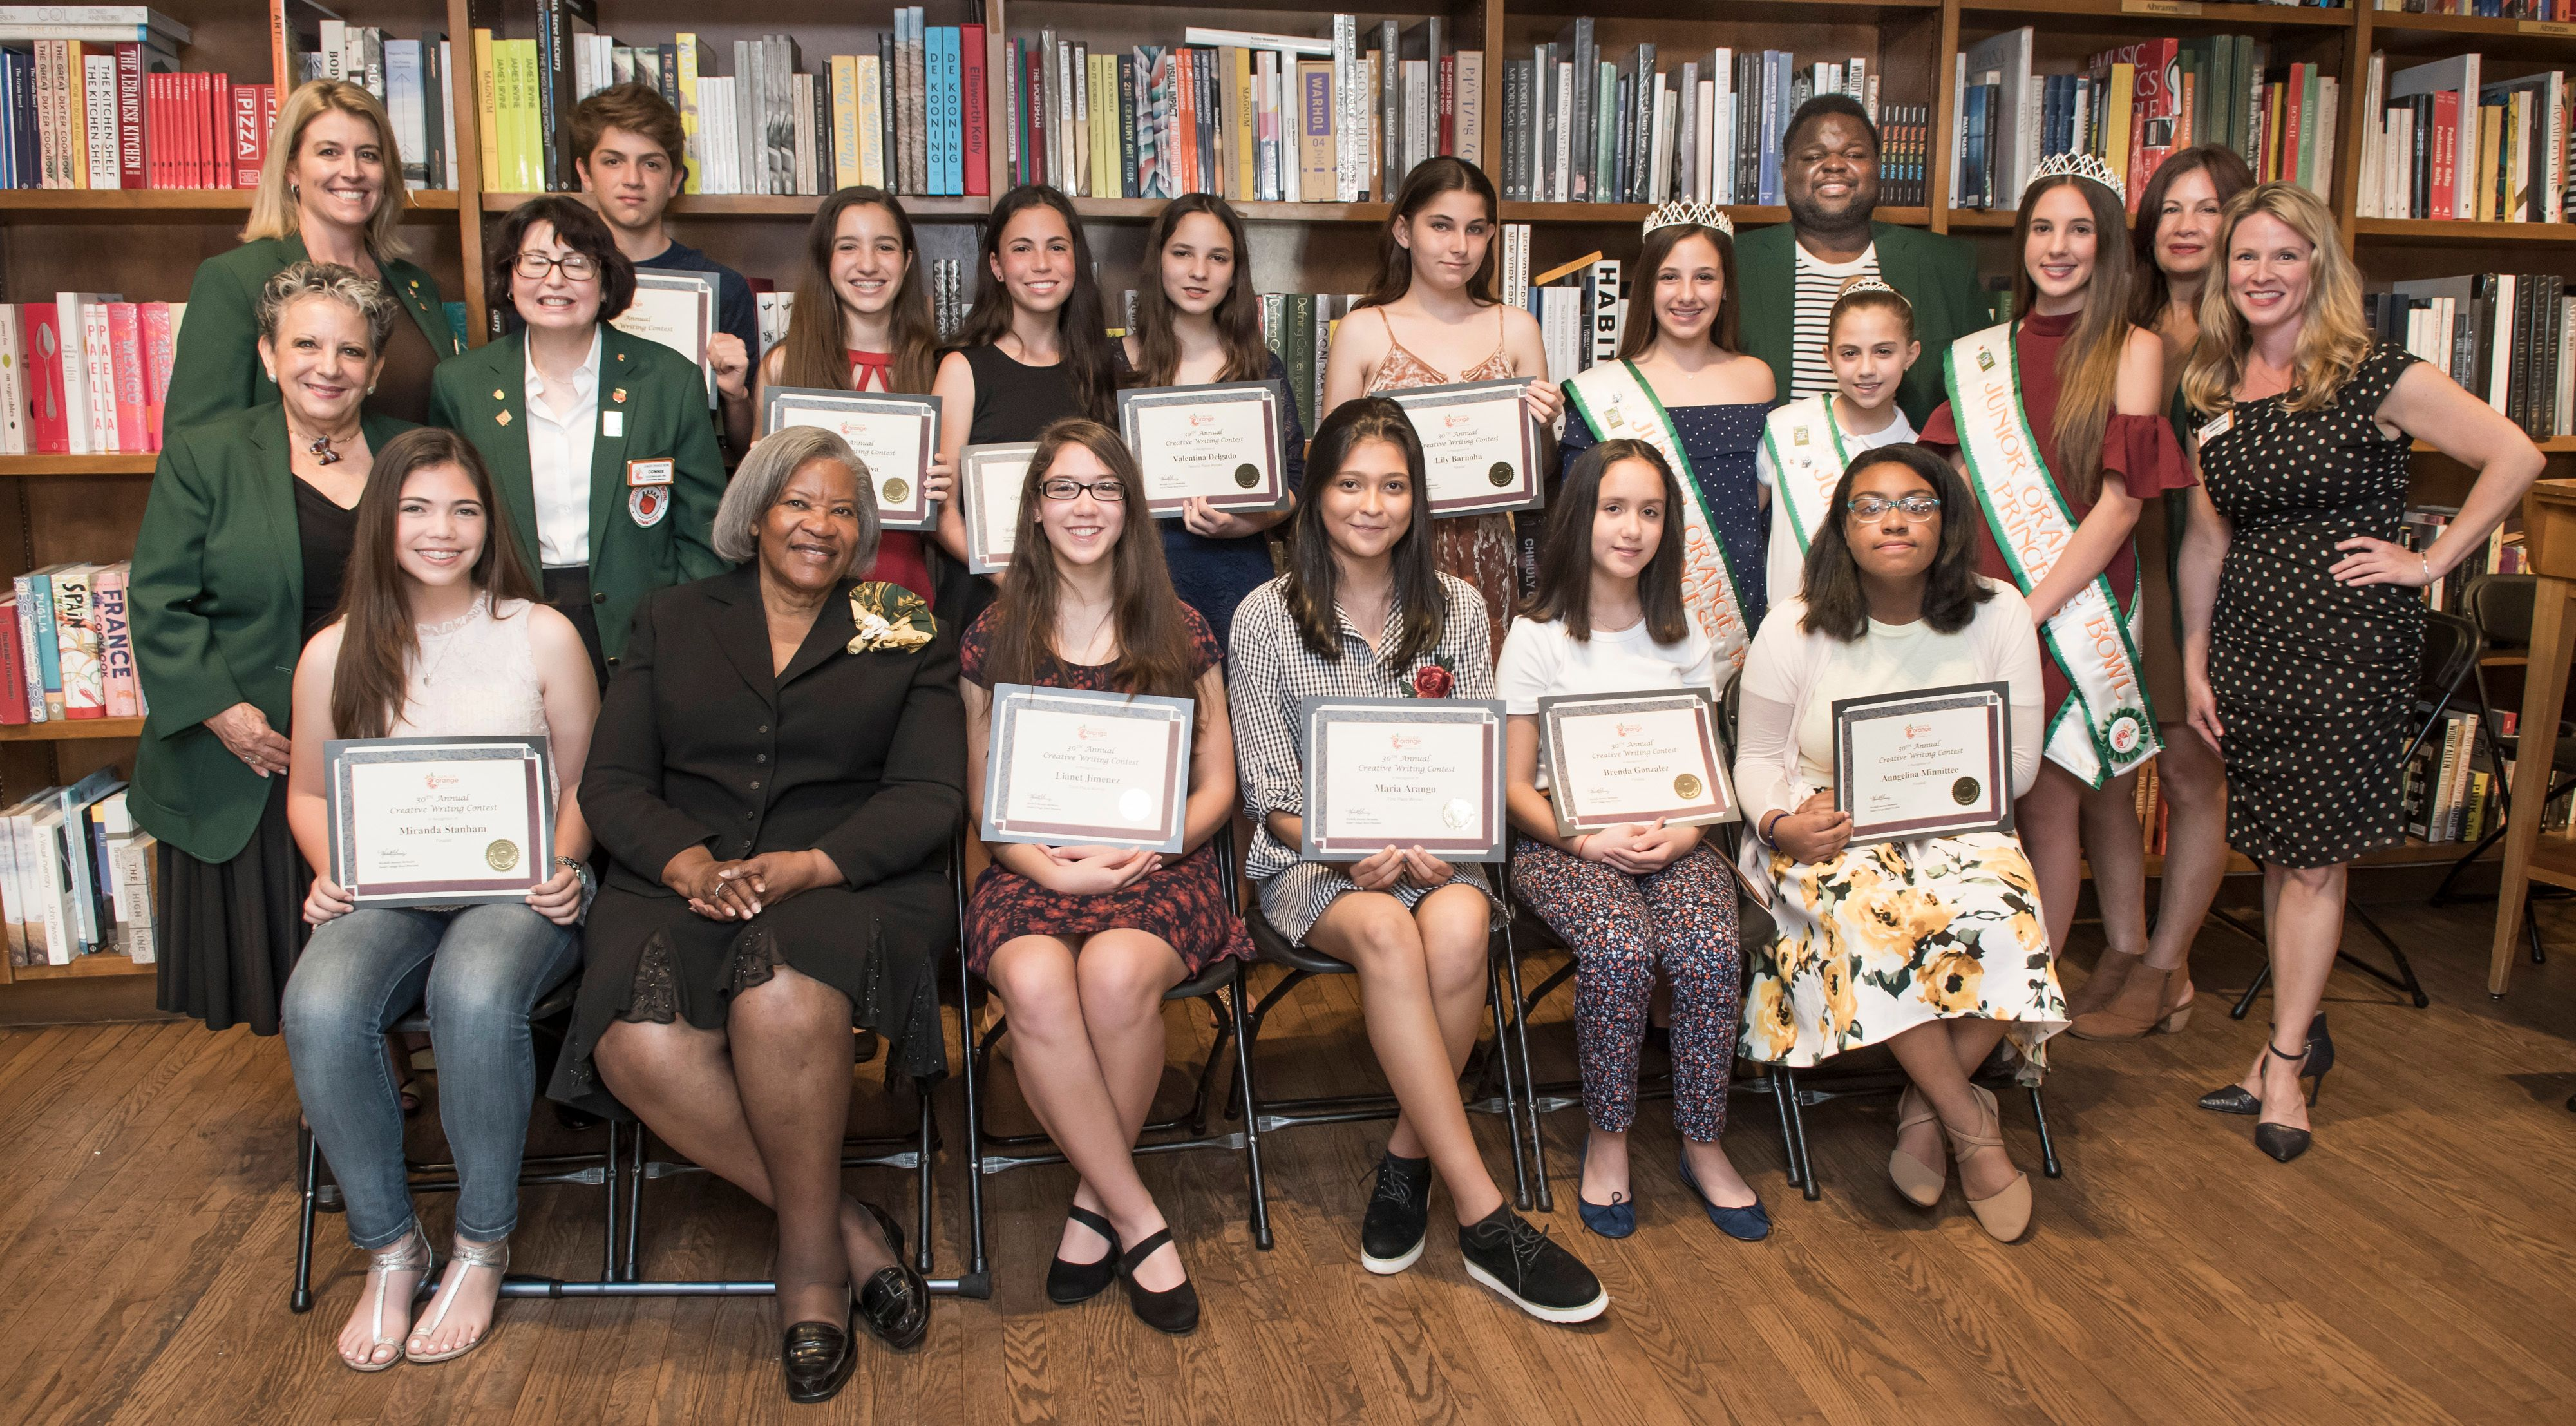 Junior Orange Bowl Student Essay Finalists and Winners to be Announced  at Books and Books Ceremony February 10th at 1 pm